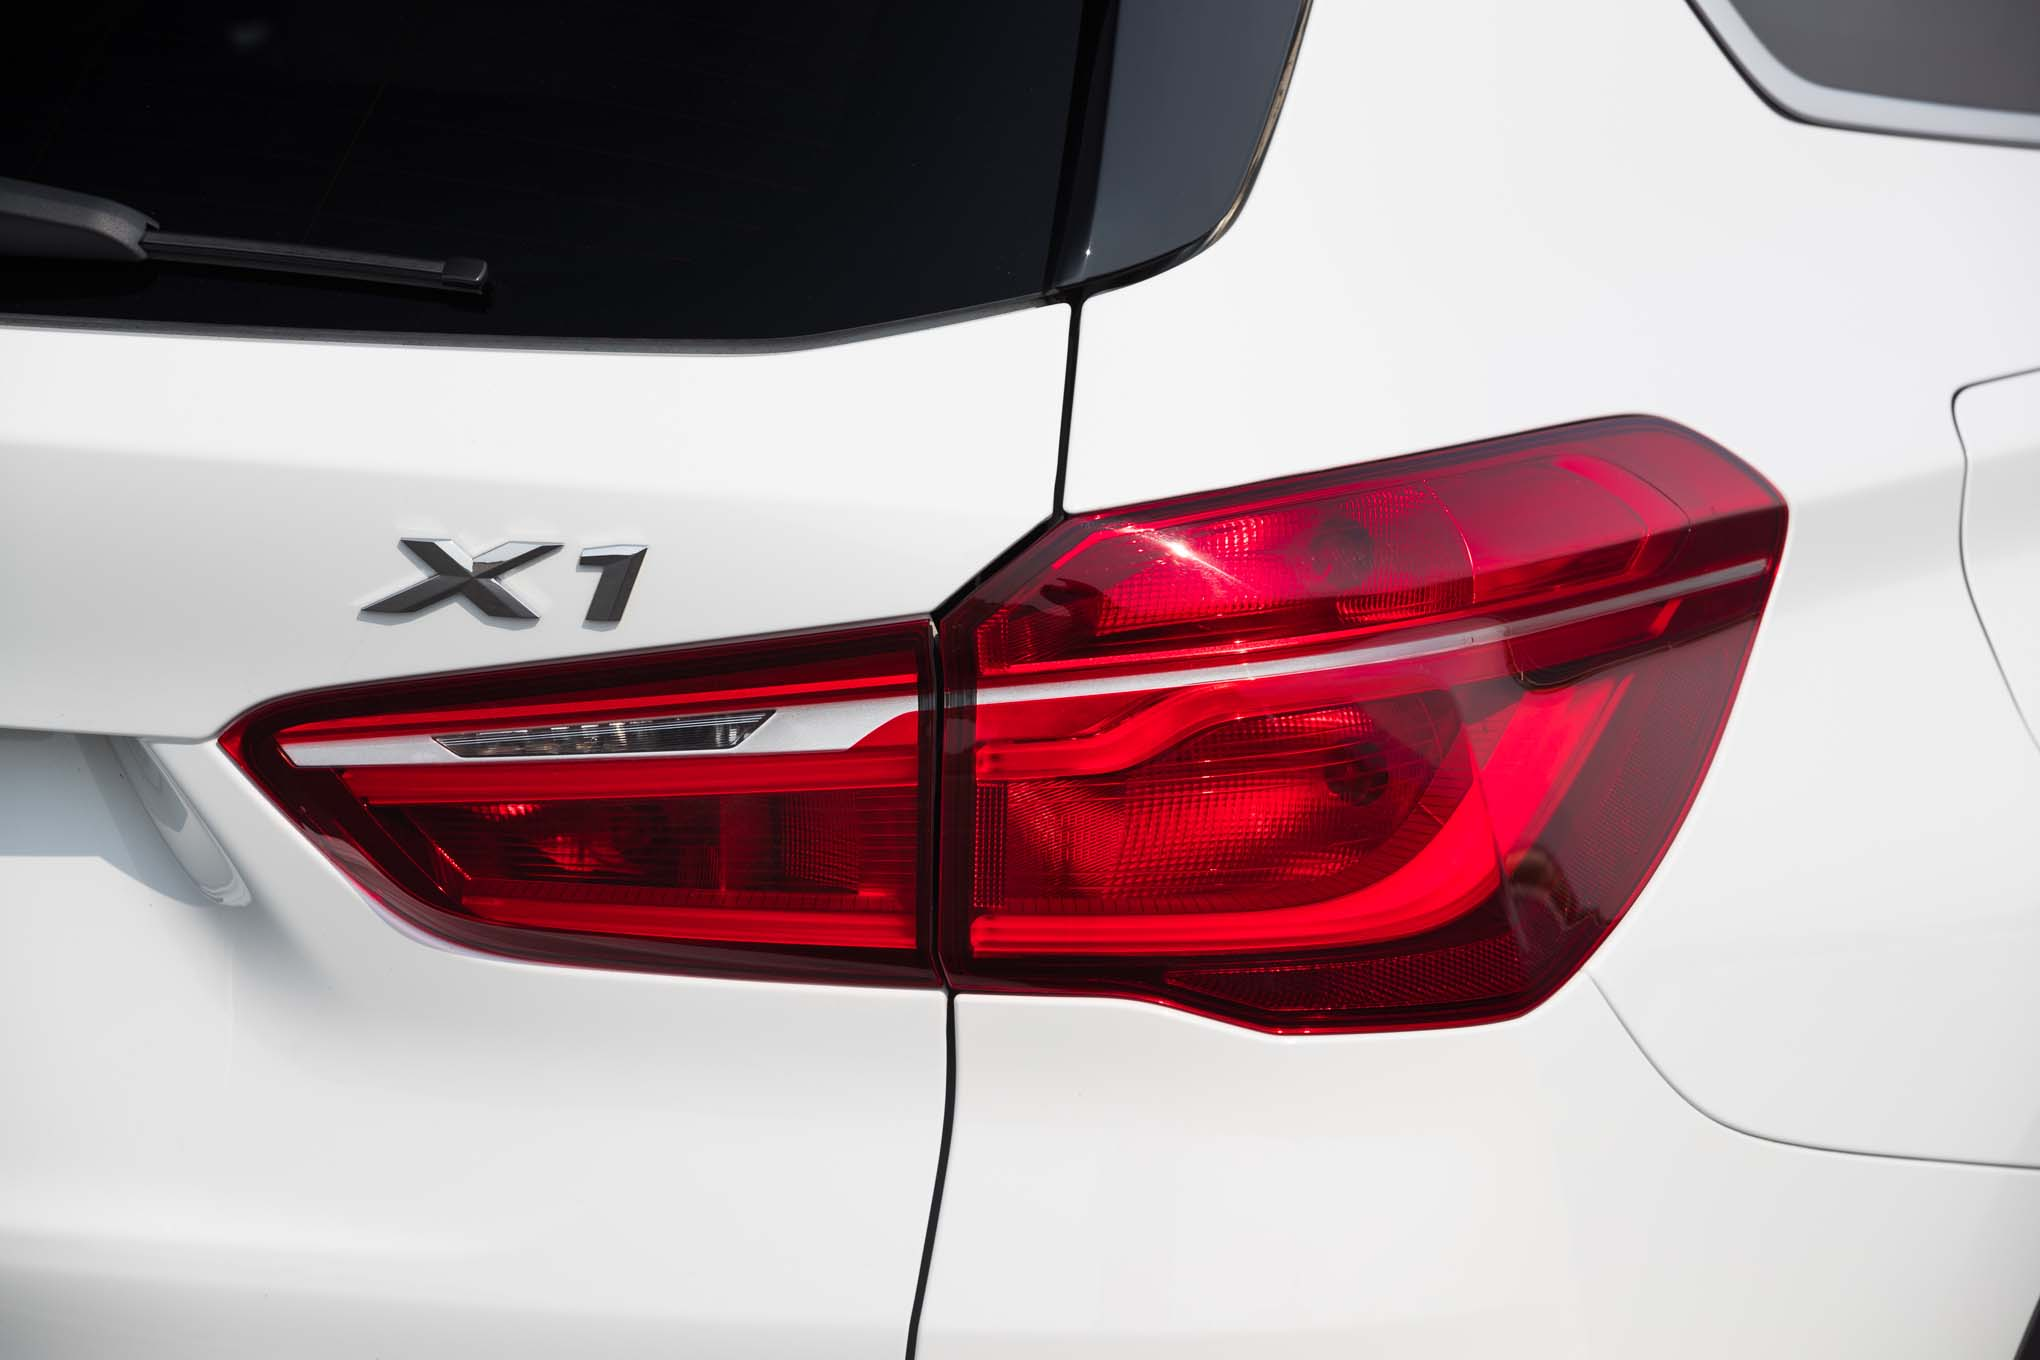 2017 BMW X1 XDrive28i Exterior View Taillight (Photo 8 of 23)